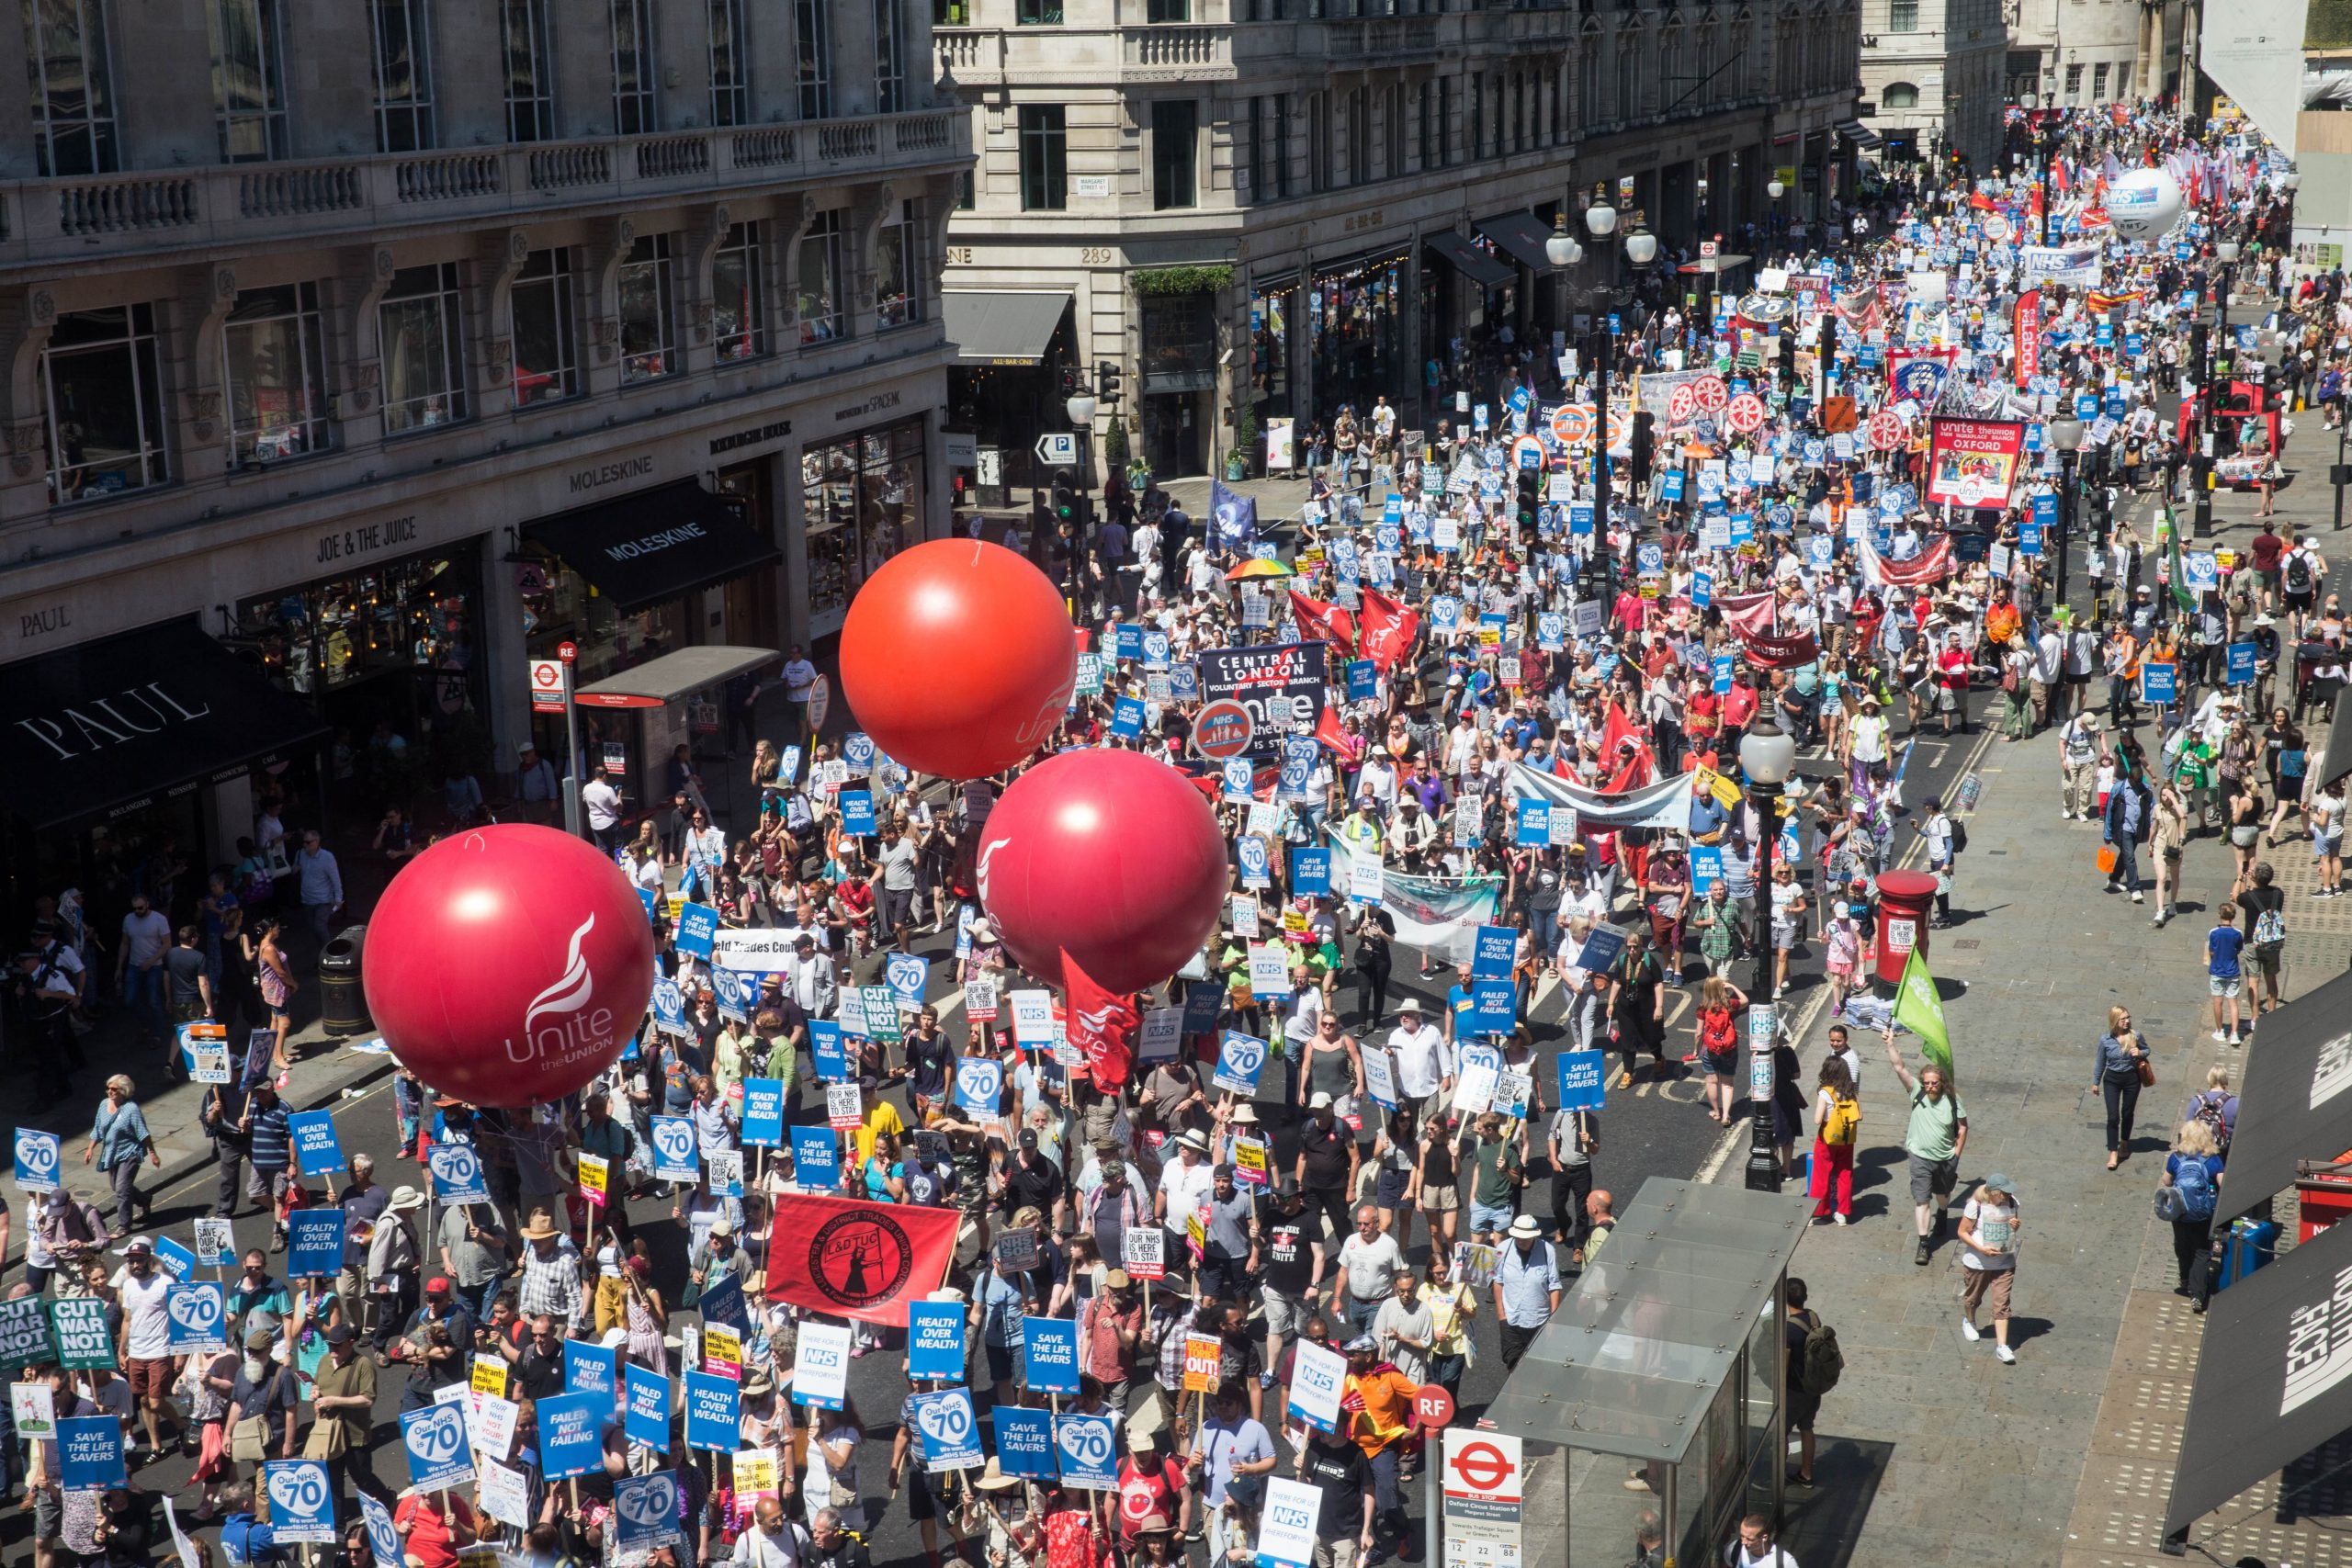 Unite march for jobs